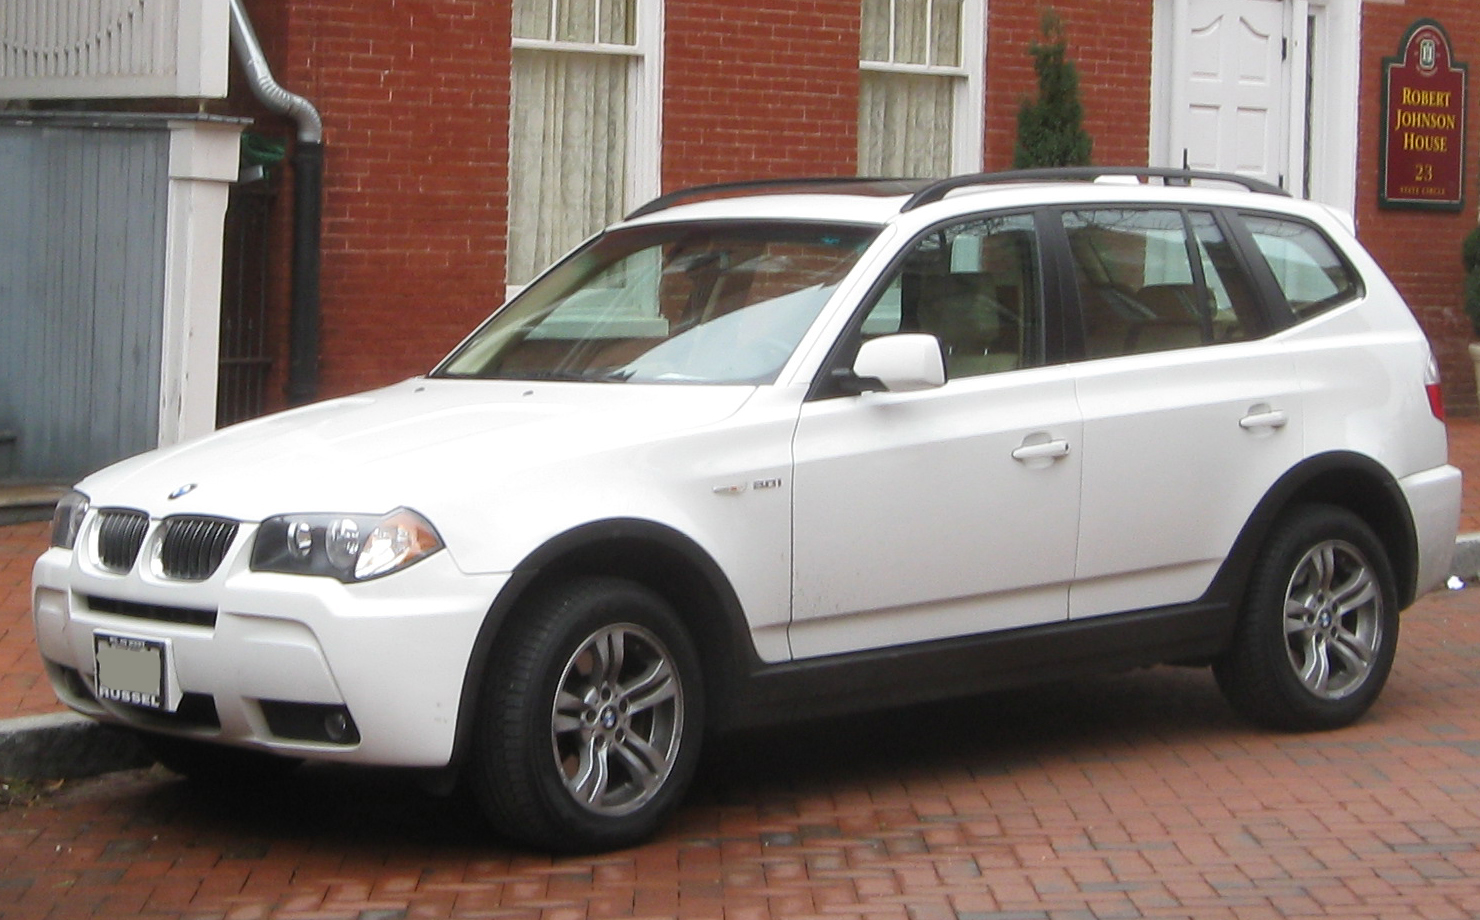 File:BMW X3 3.0i -- 01-22-2010.jpg - Wikimedia Commons